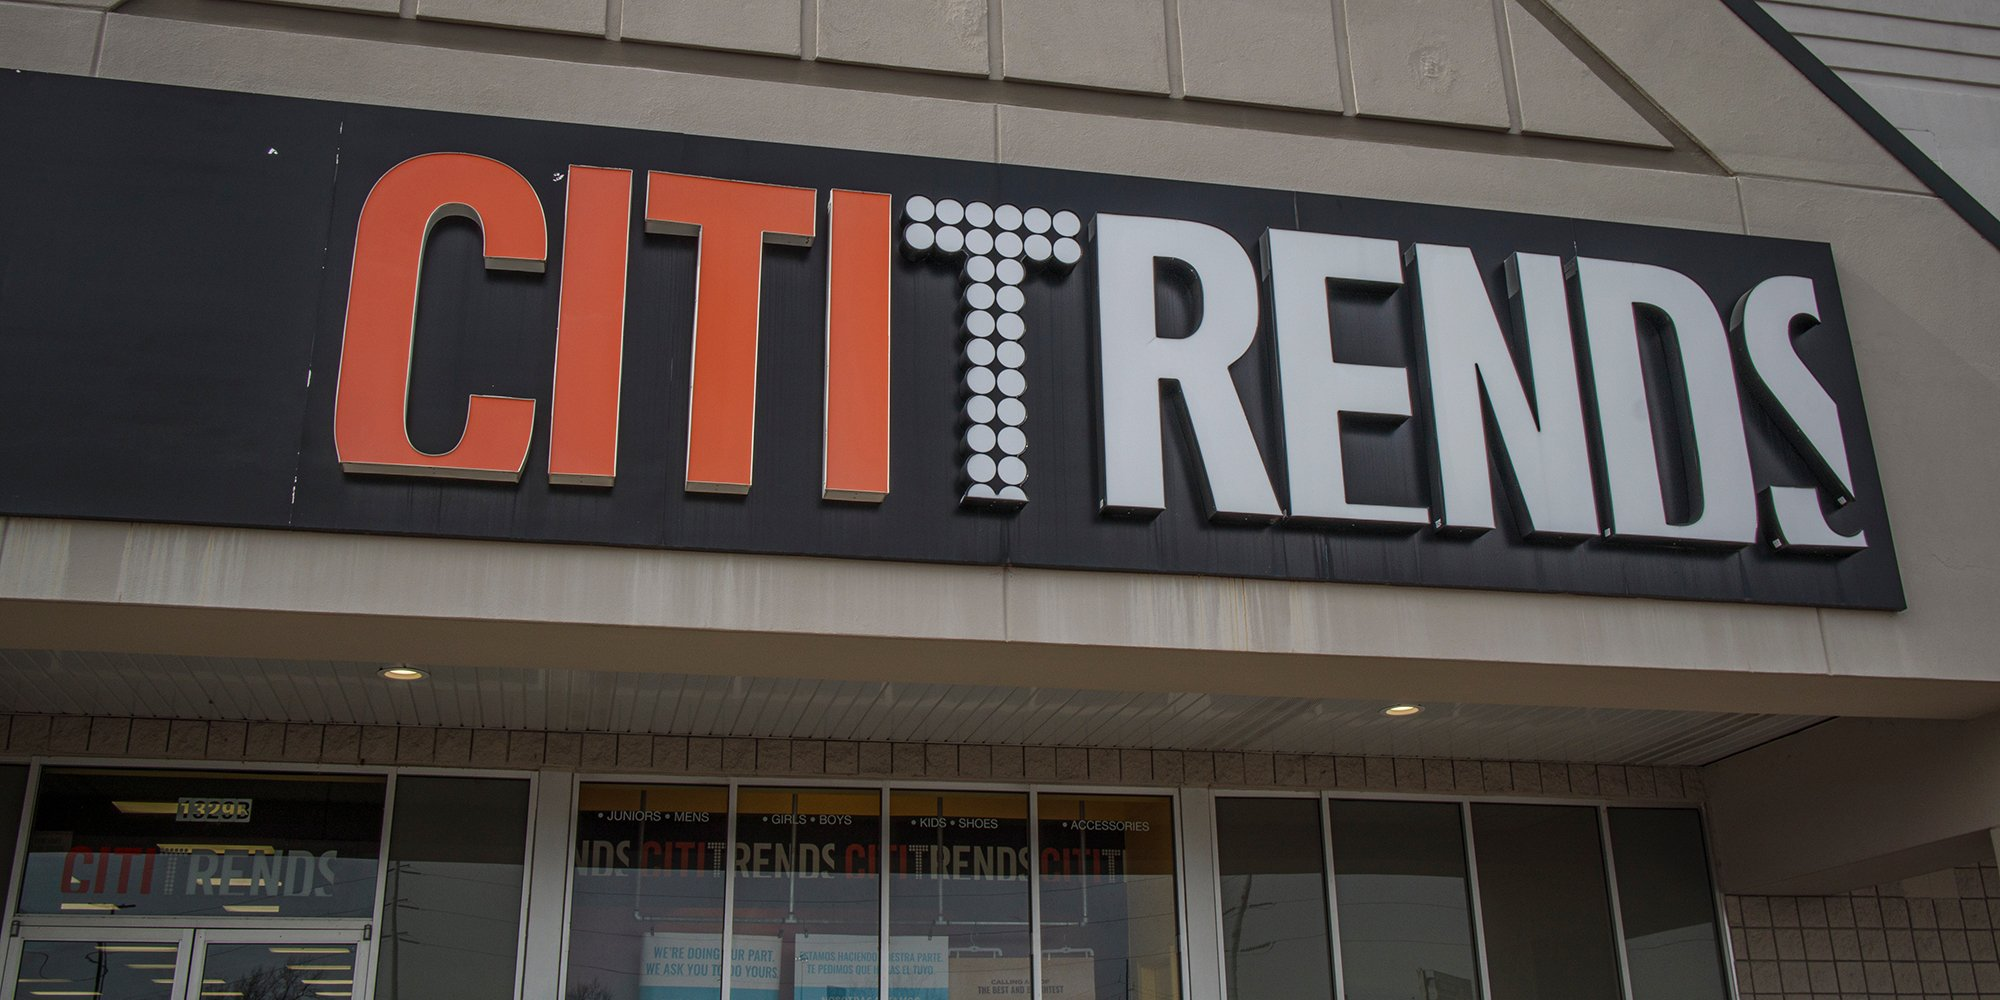 Citi Trends Selects Intalytics for Real Estate Analytics Solutions